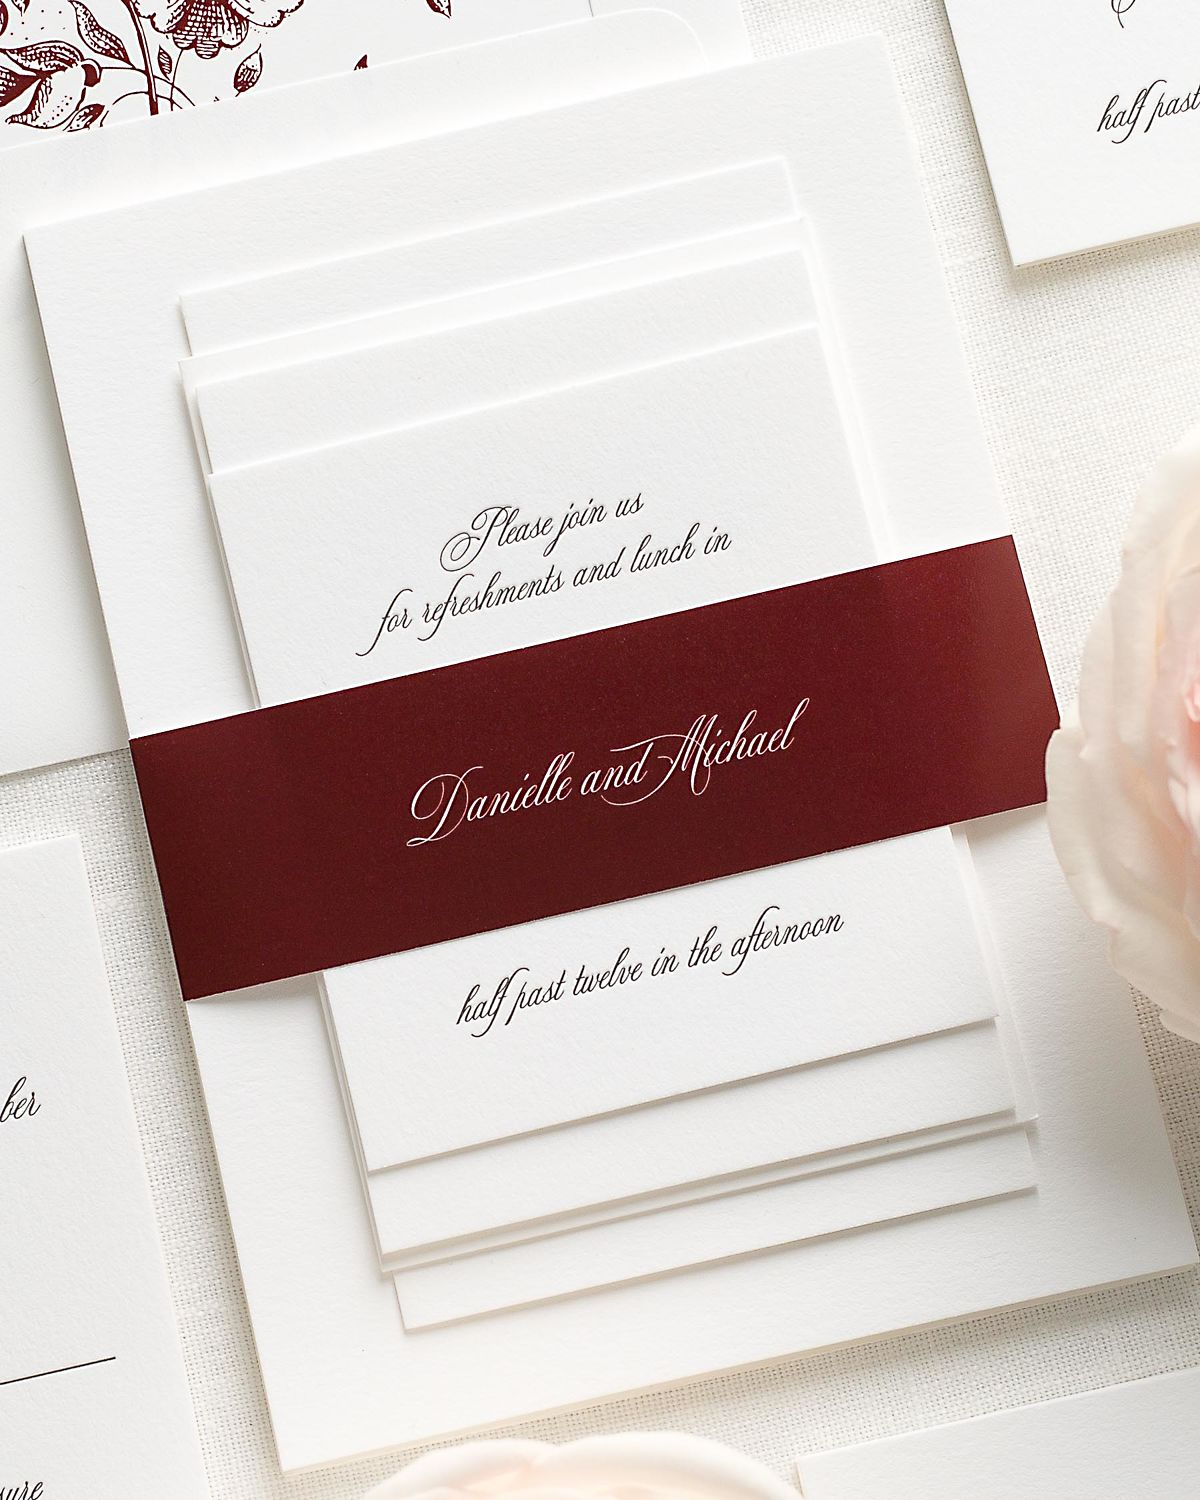 Wedding Invitations with Cabernet Belly Band and Letterpress Printing